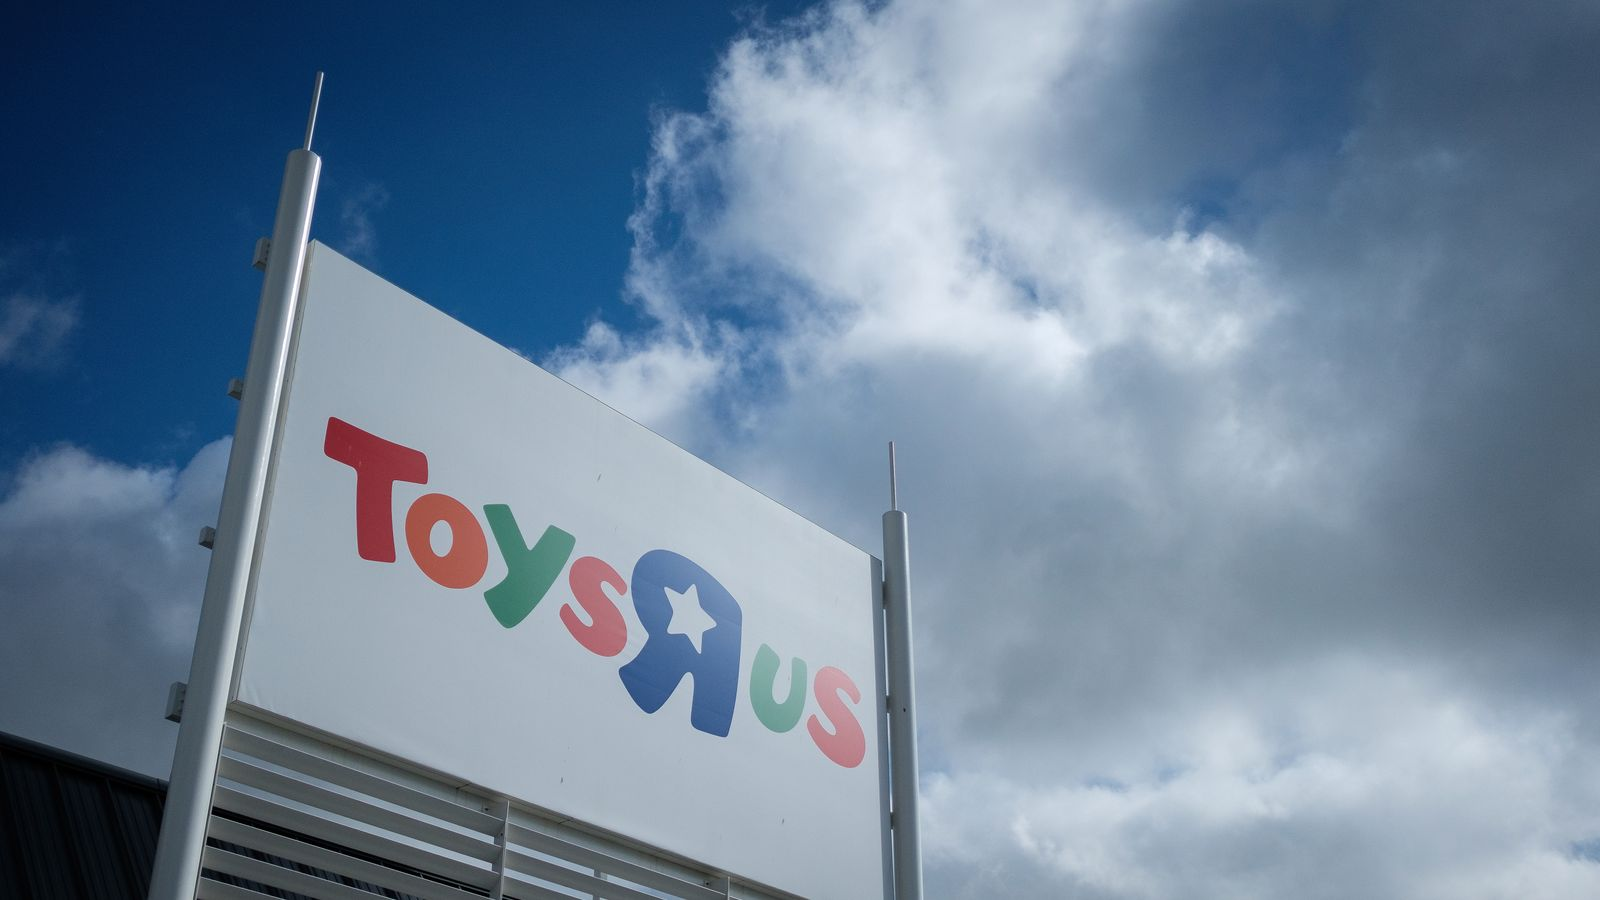 Toys R Us hangs by thread as PPF opposes rescue